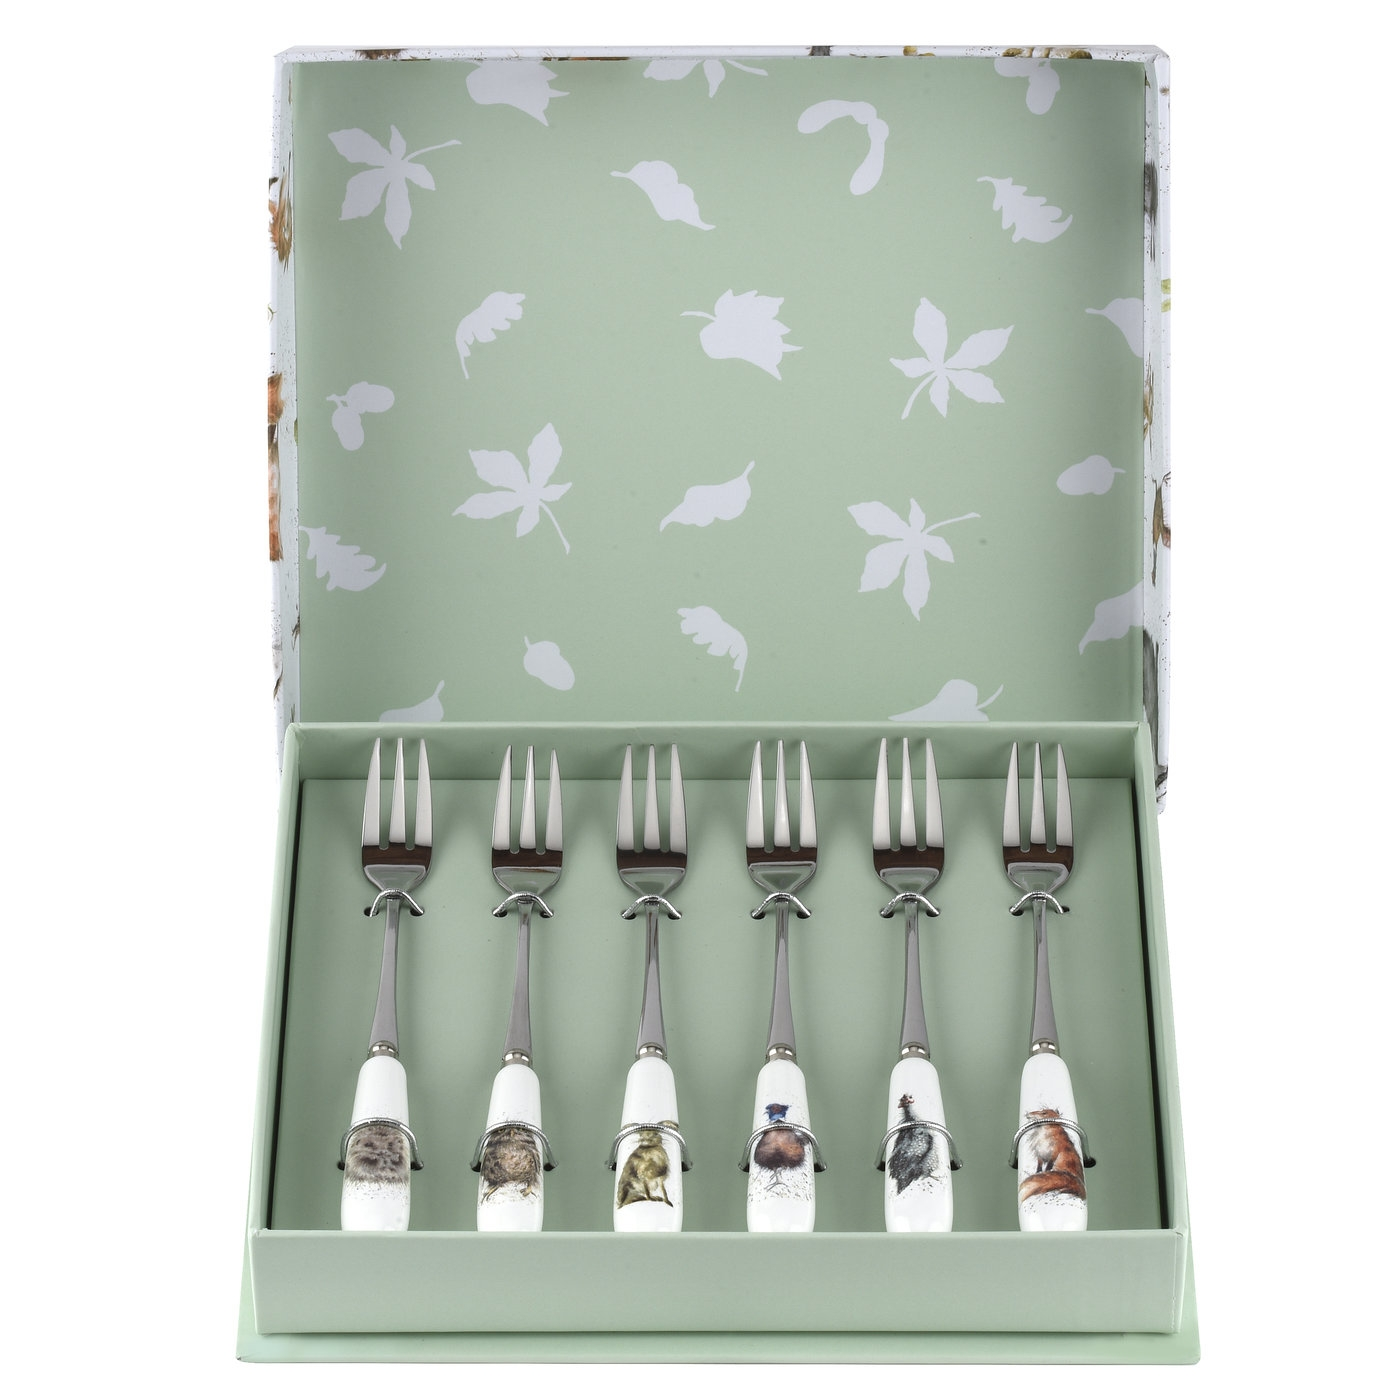 Wrendale Designs Set of 6 Pastry Forks (Assorted) image number 0